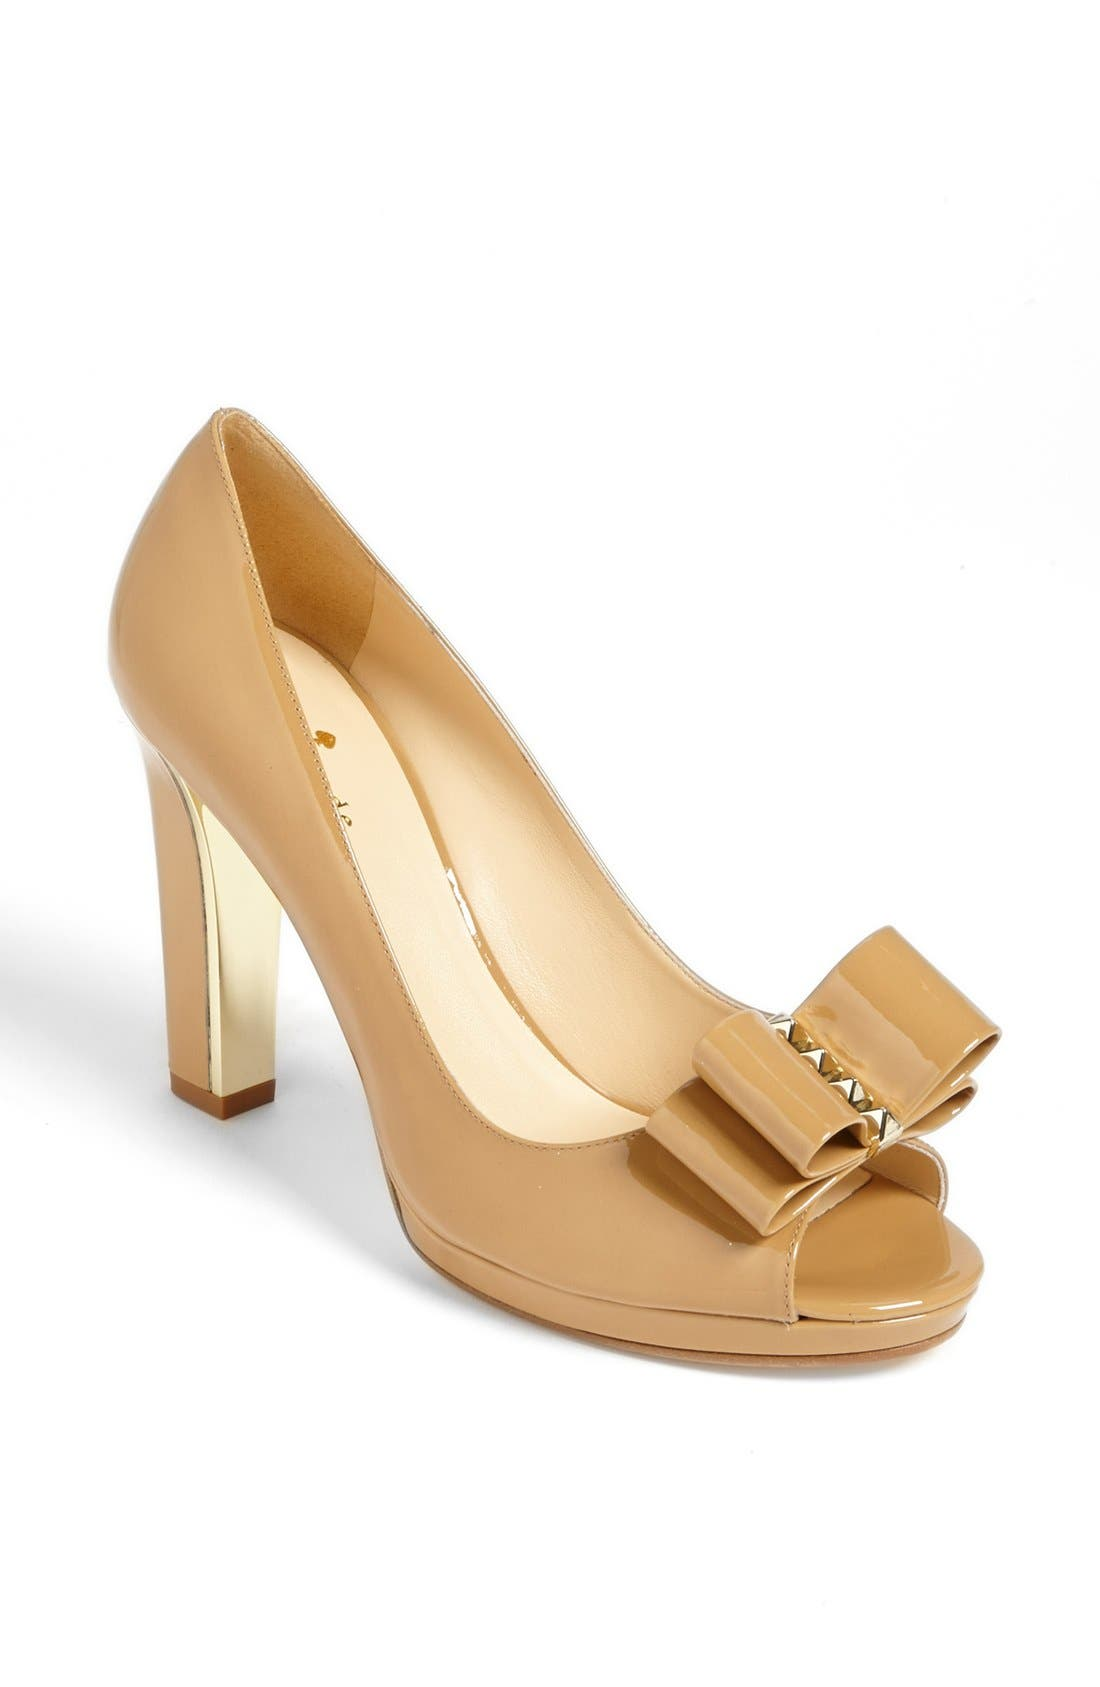 Main Image - kate spade new york 'francesca' pump